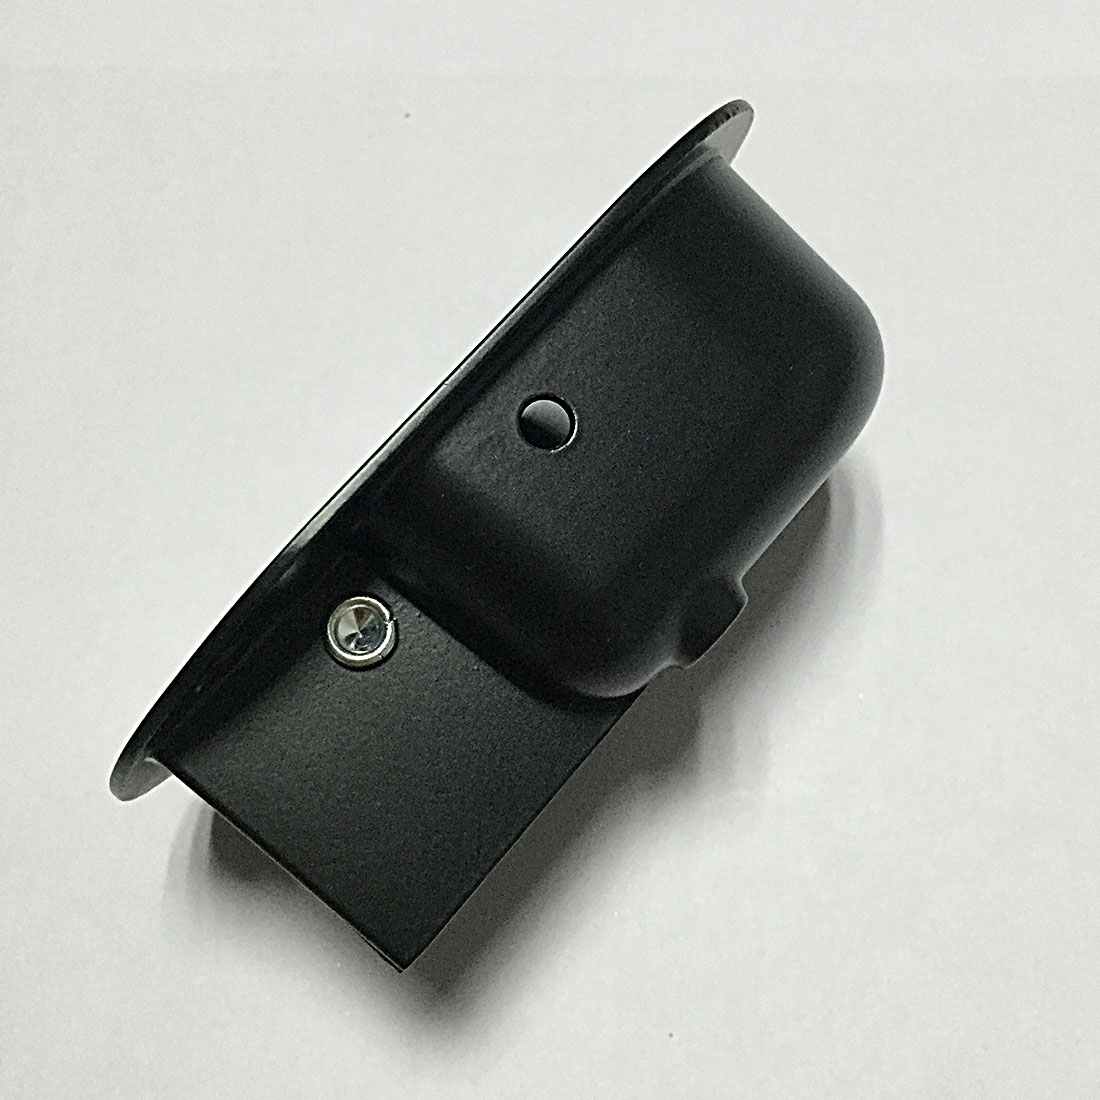 1pc11.2x6.5x3.7cm Black Durable Metal Handle Recliner Chair Sofa Couch Release Lever Replacement Economic